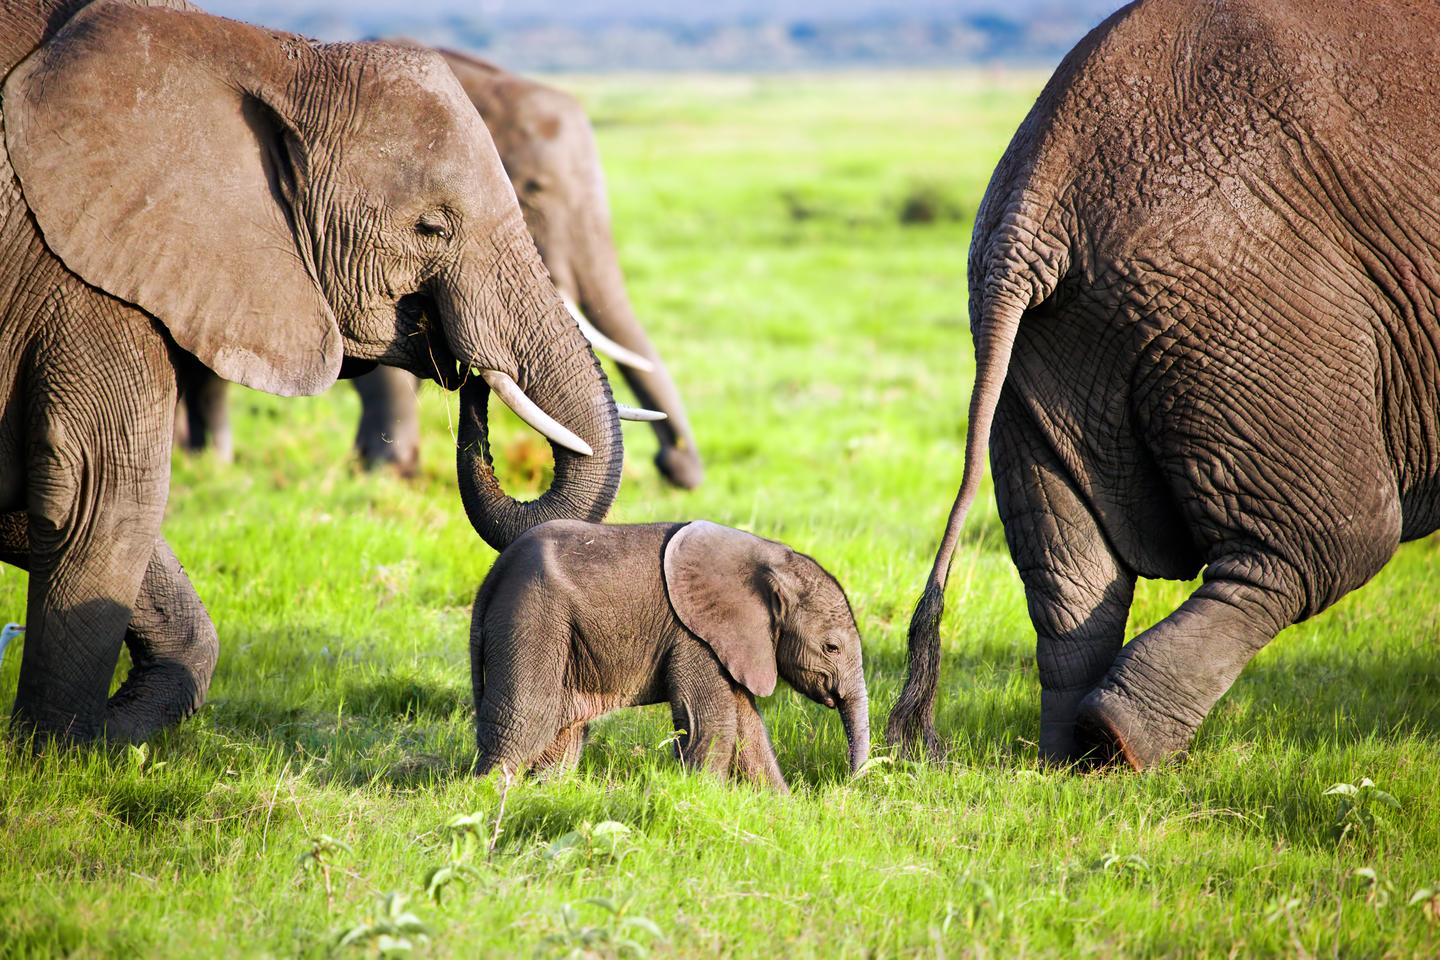 Behavioral studies carried out in zoos suggest that elephants sleep for four to six hours a day, but what about those out in the wild?